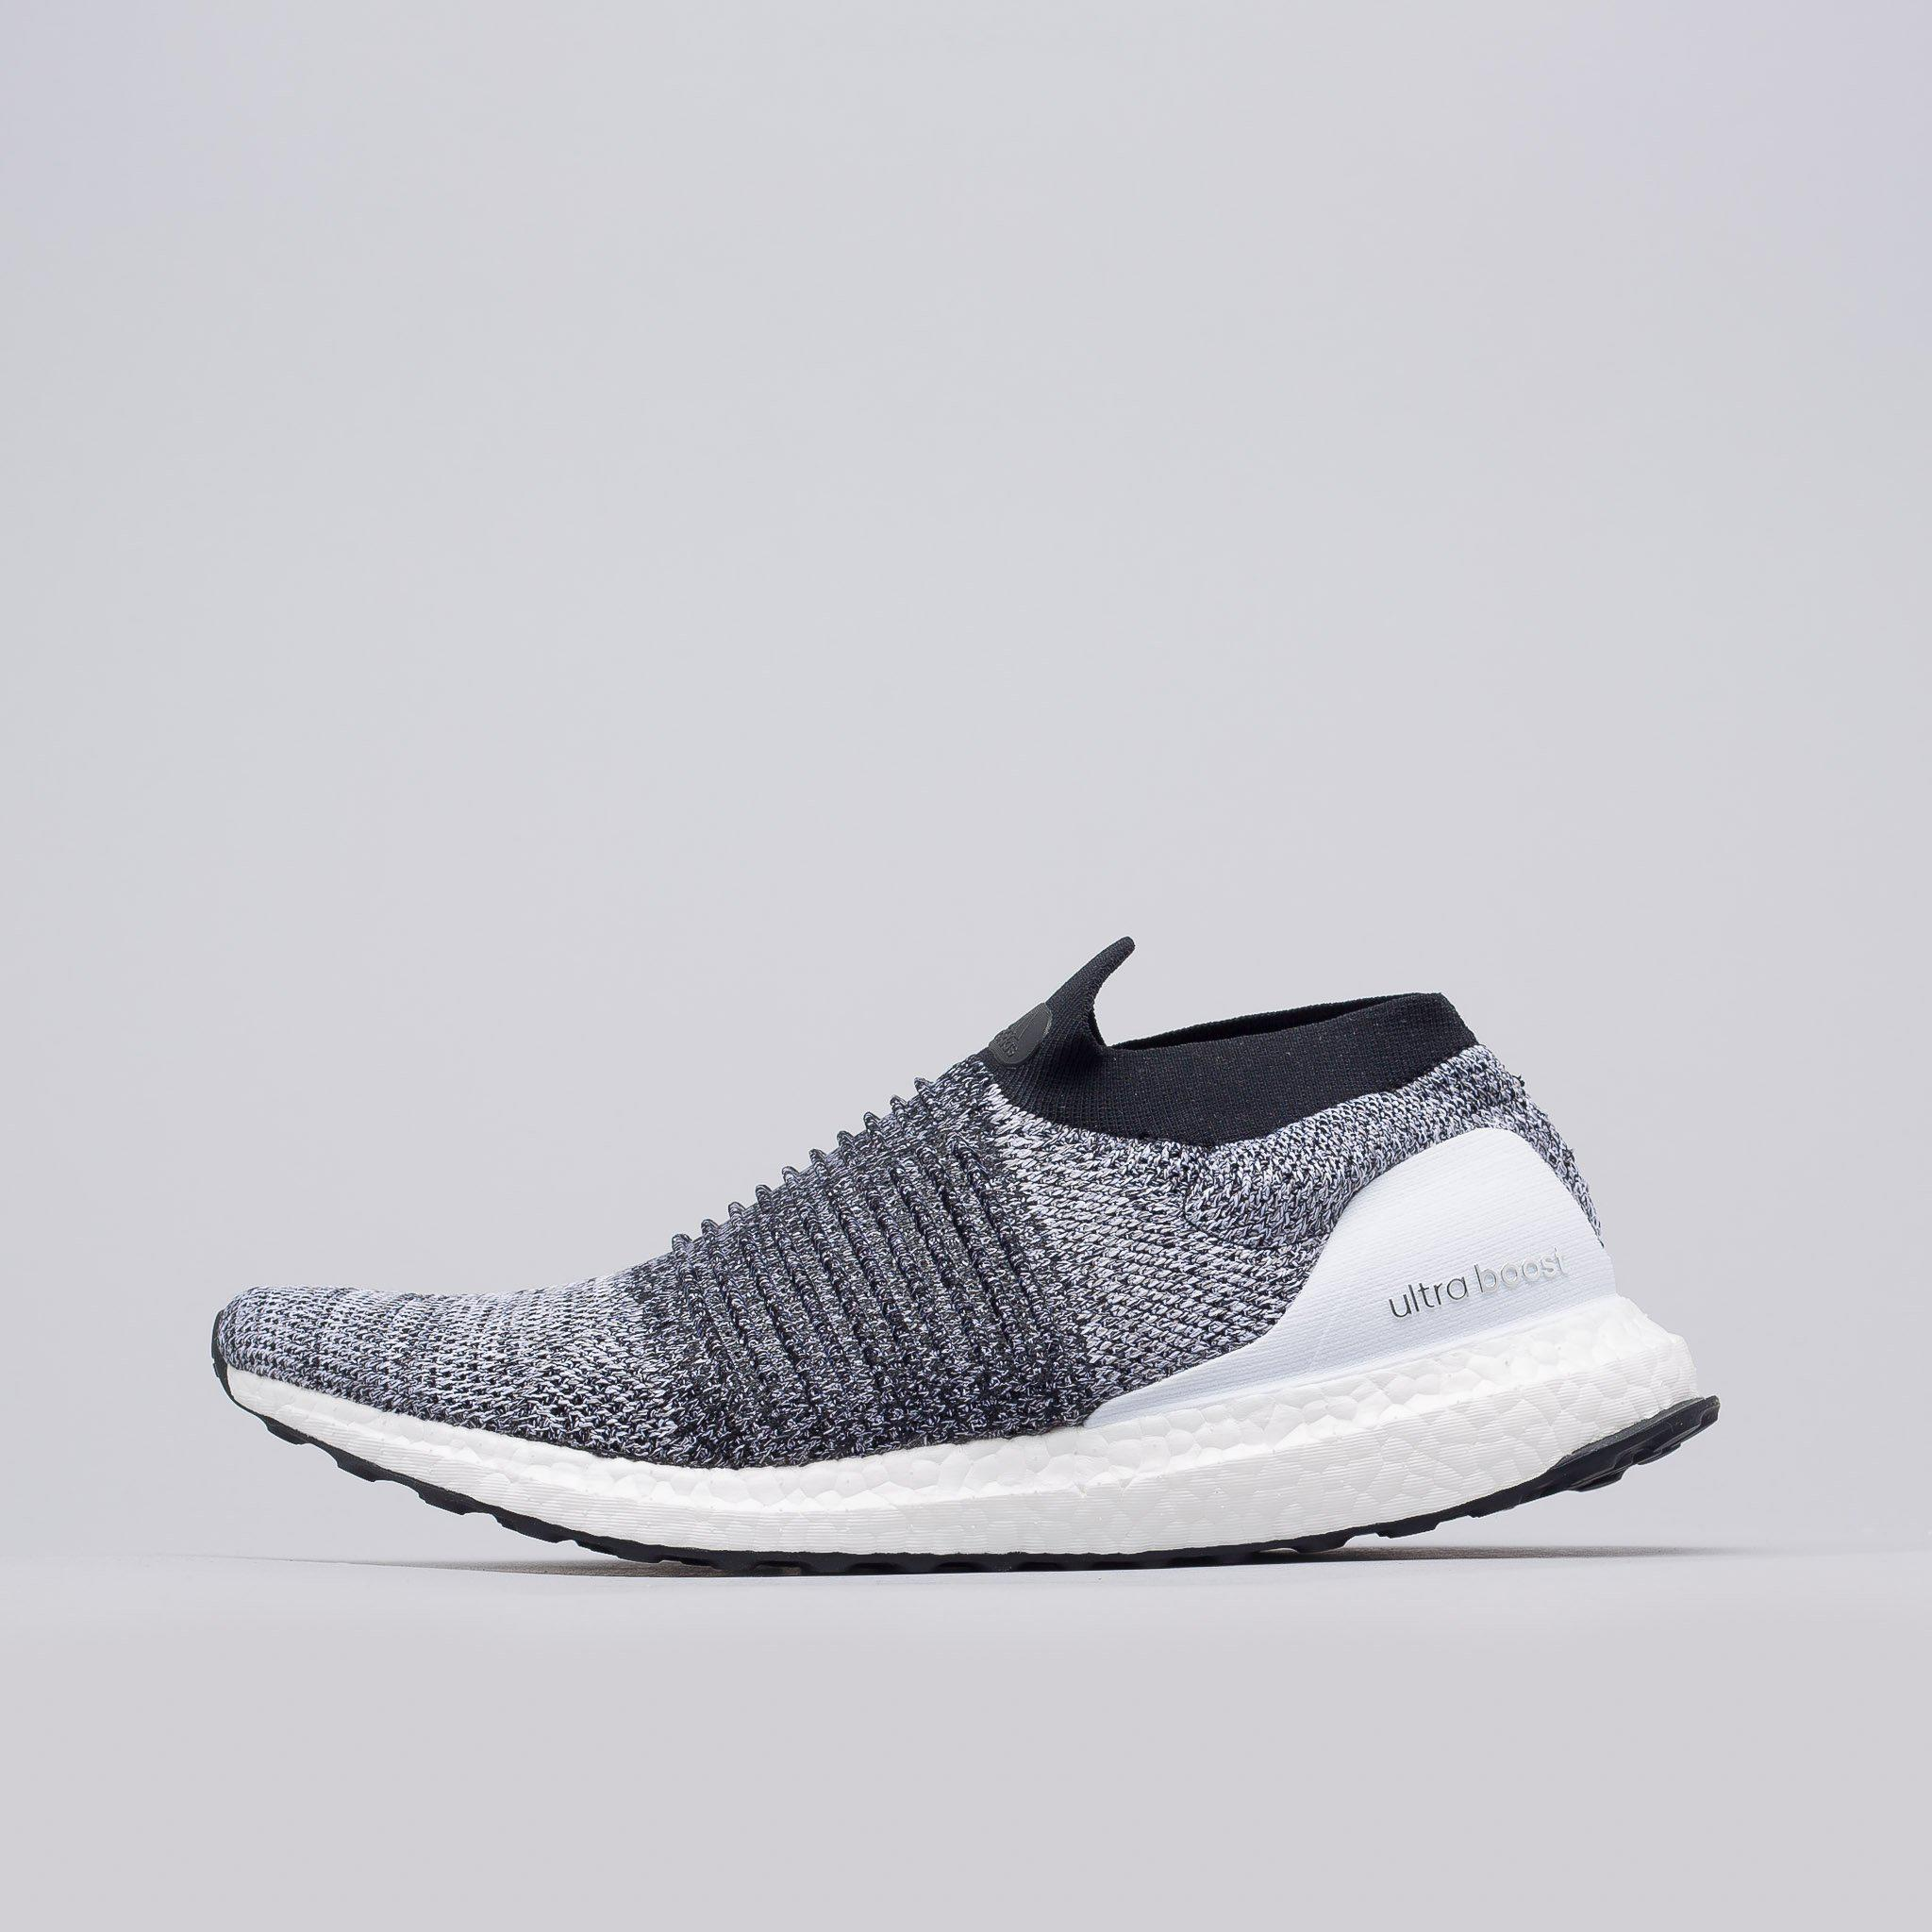 f1ef0b0c75b0c Lyst - adidas Ultra Boost Laceless In White in White for Men